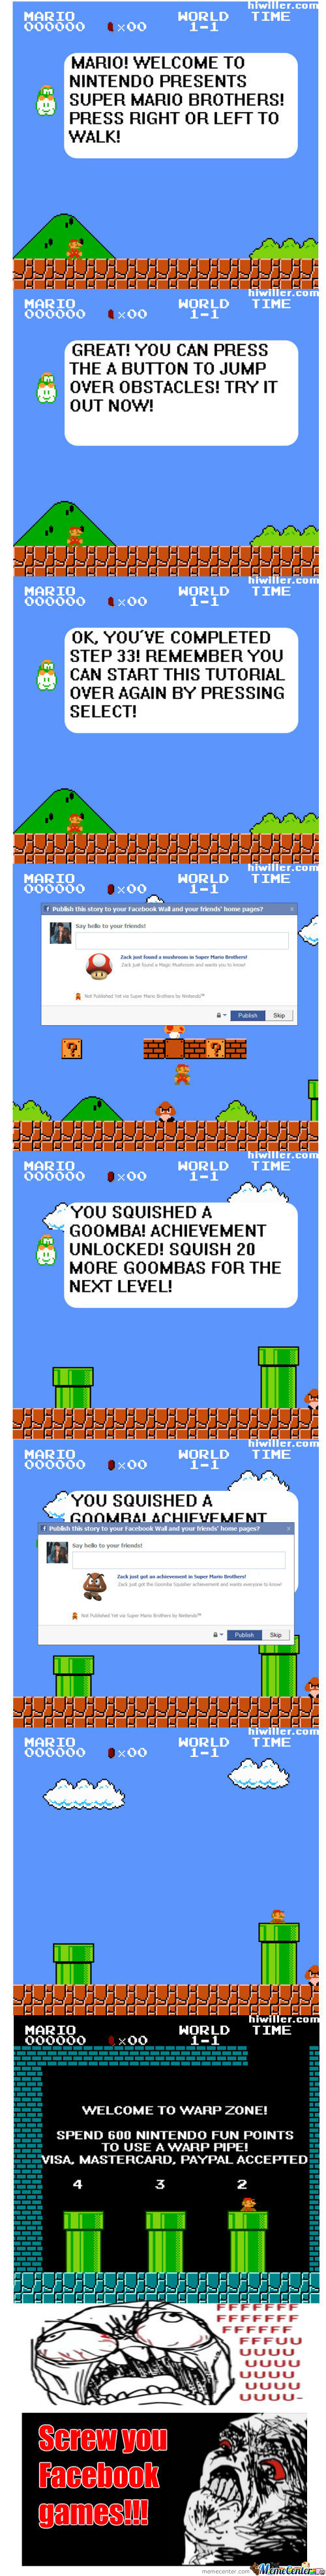 If Mario Bros. Becomes A Facebook Game